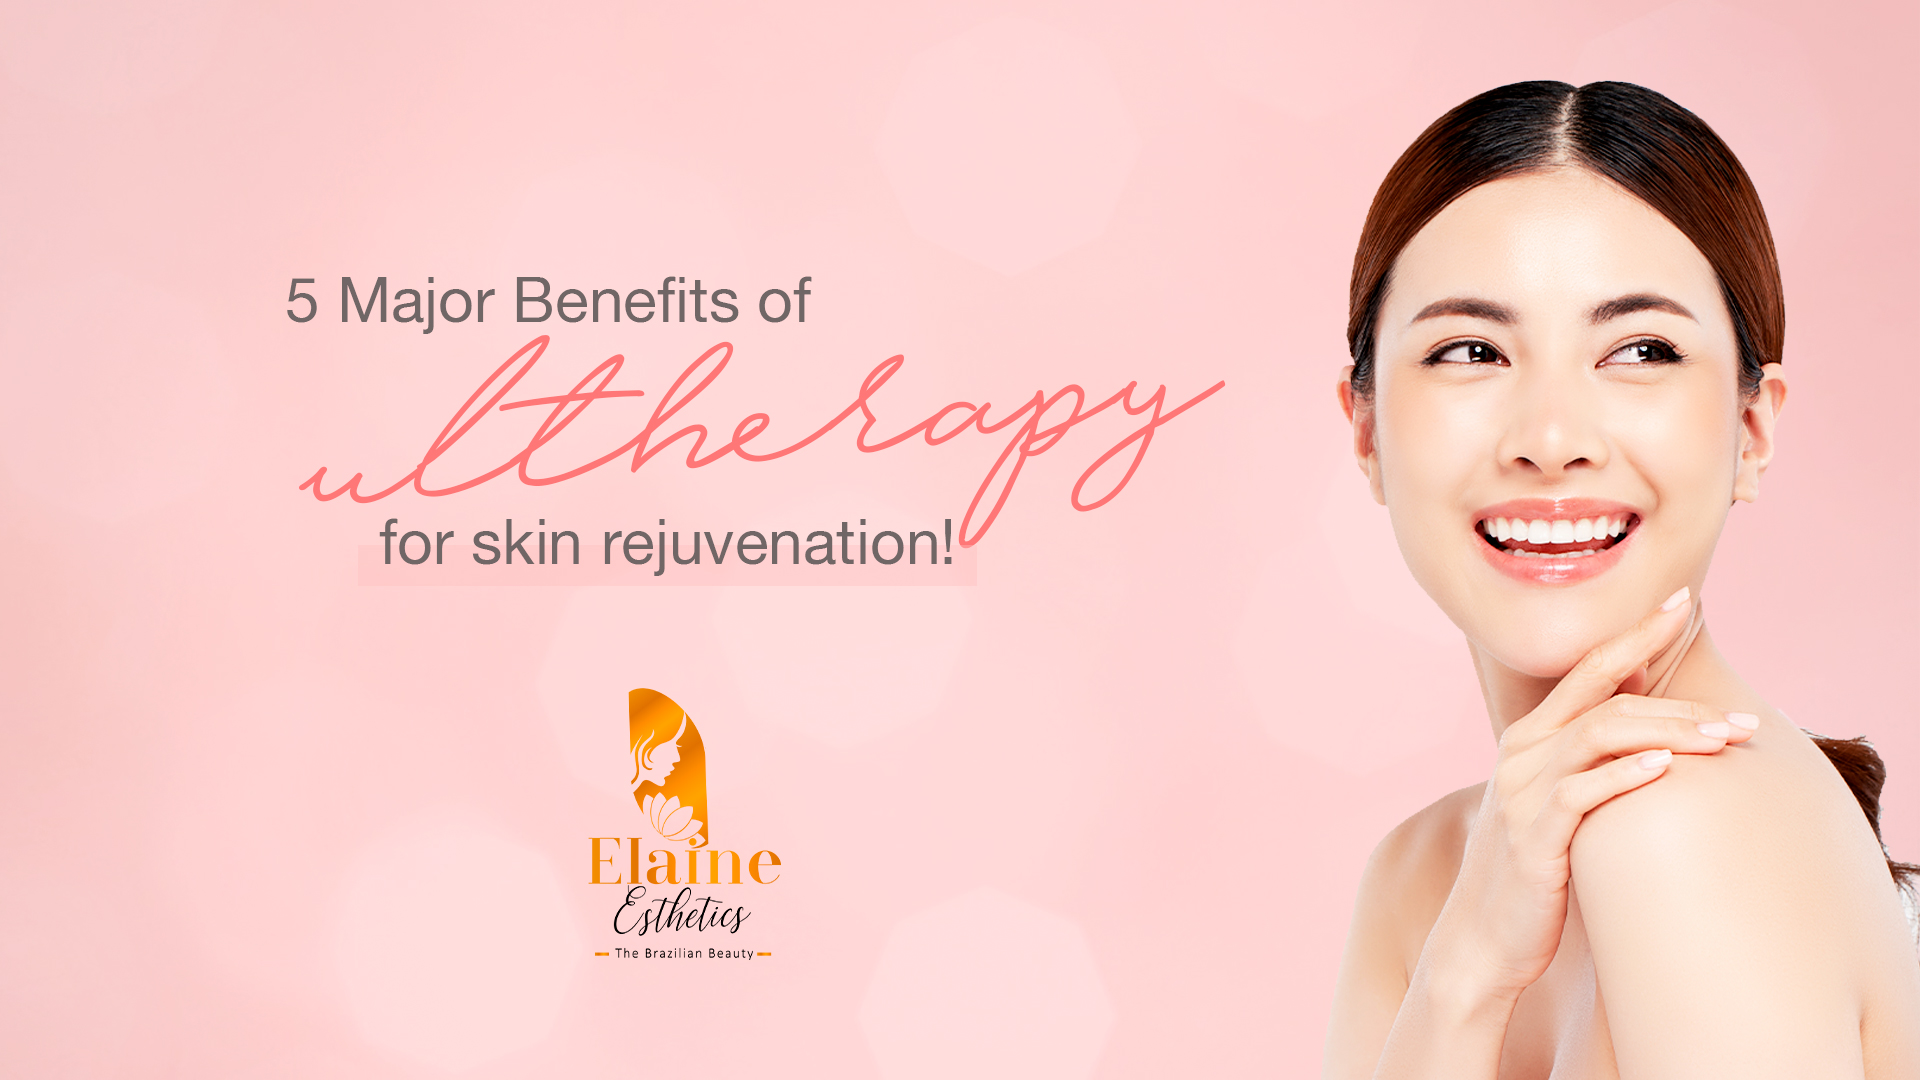 """Ulthera® is a non-surgical treatment designed to tighten facial tissue through deep heating of the skin. Using ultrasound energy, the innovative treatment works to stimulate the growth of both existing and new collagen..."""